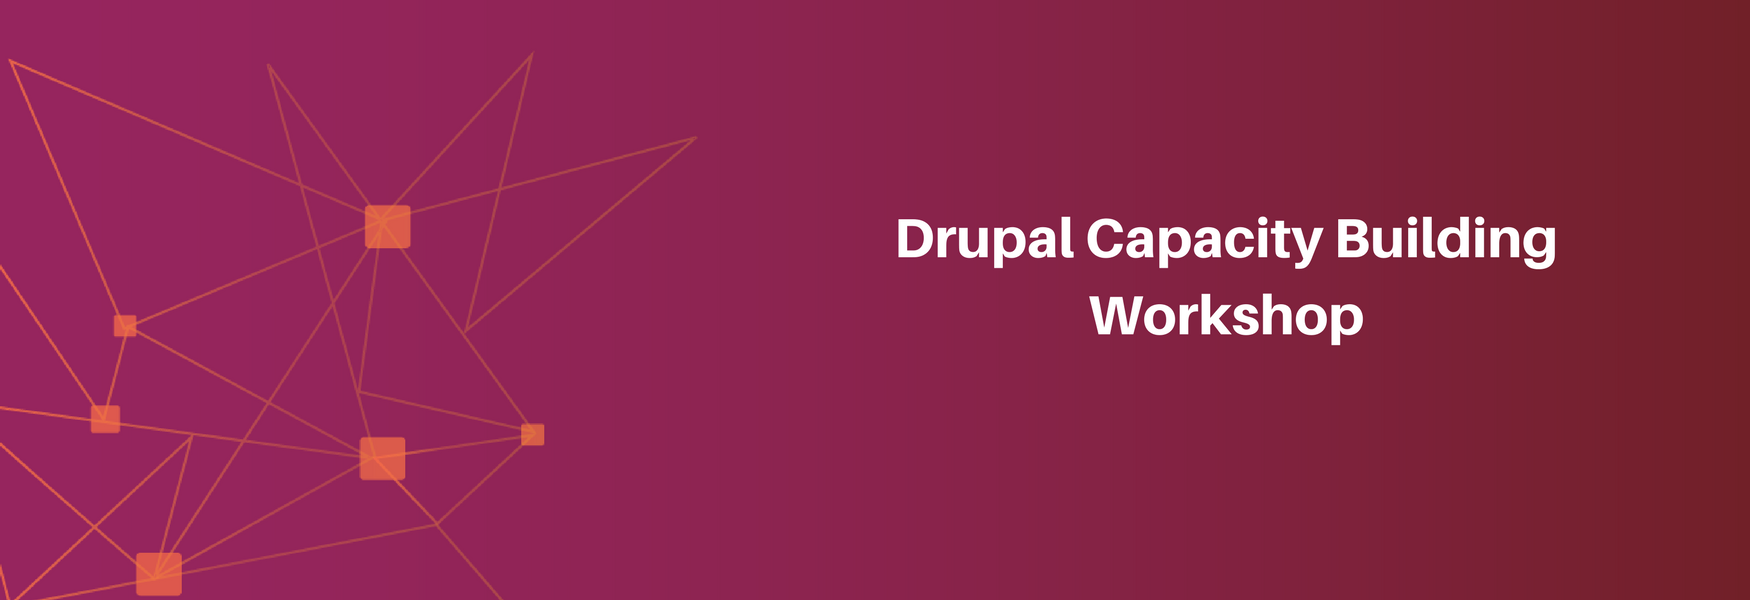 drupal workshop